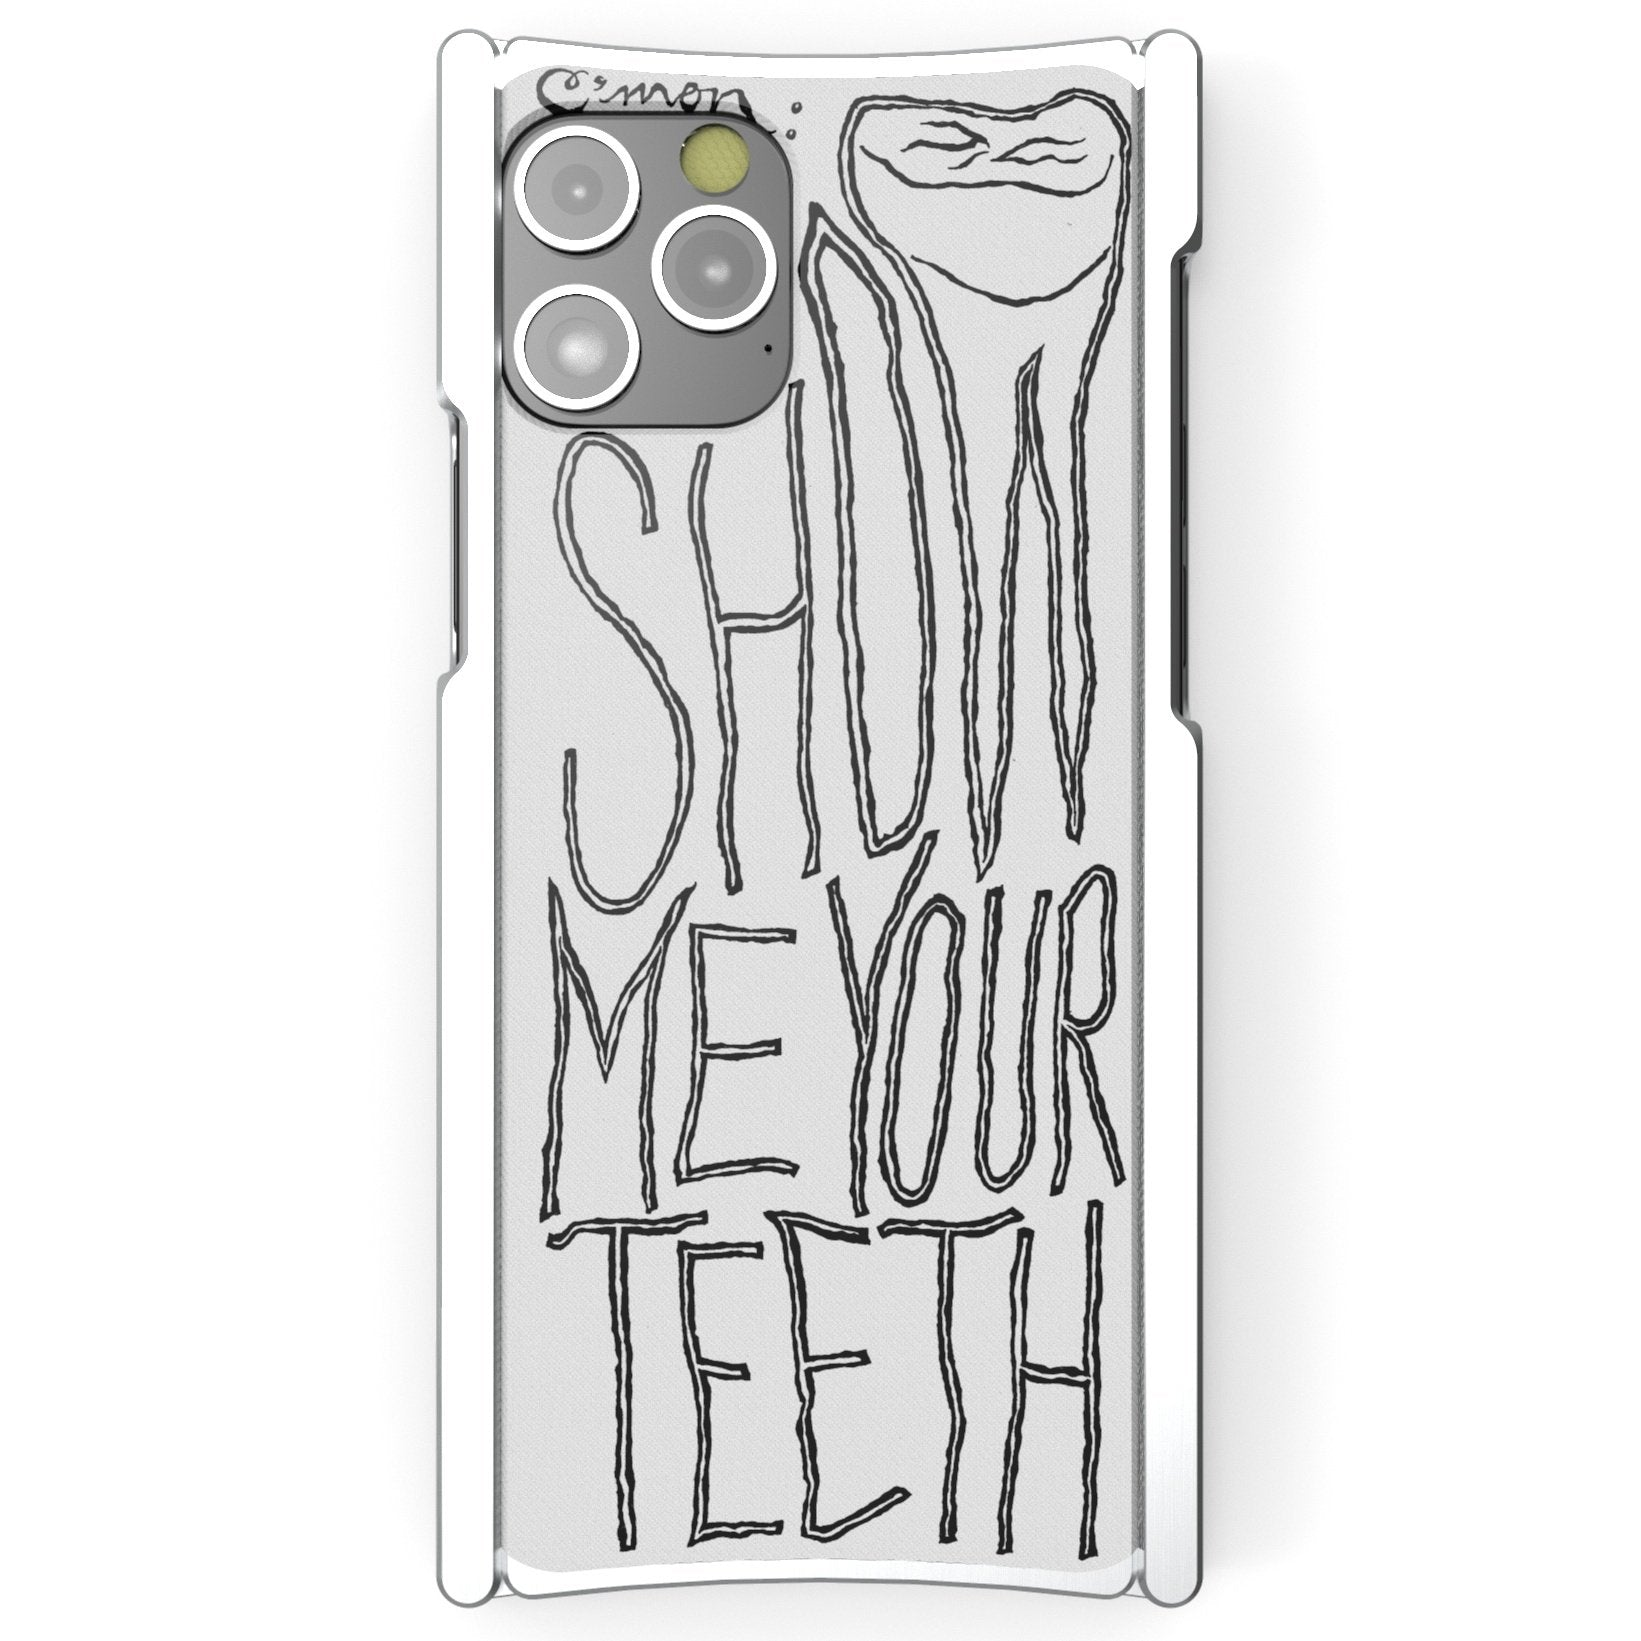 Alex Gingrow, SHOW ME YOUR TEETH, Europa 12 Pro Max Silver Aluminum and White G10 - Preorder